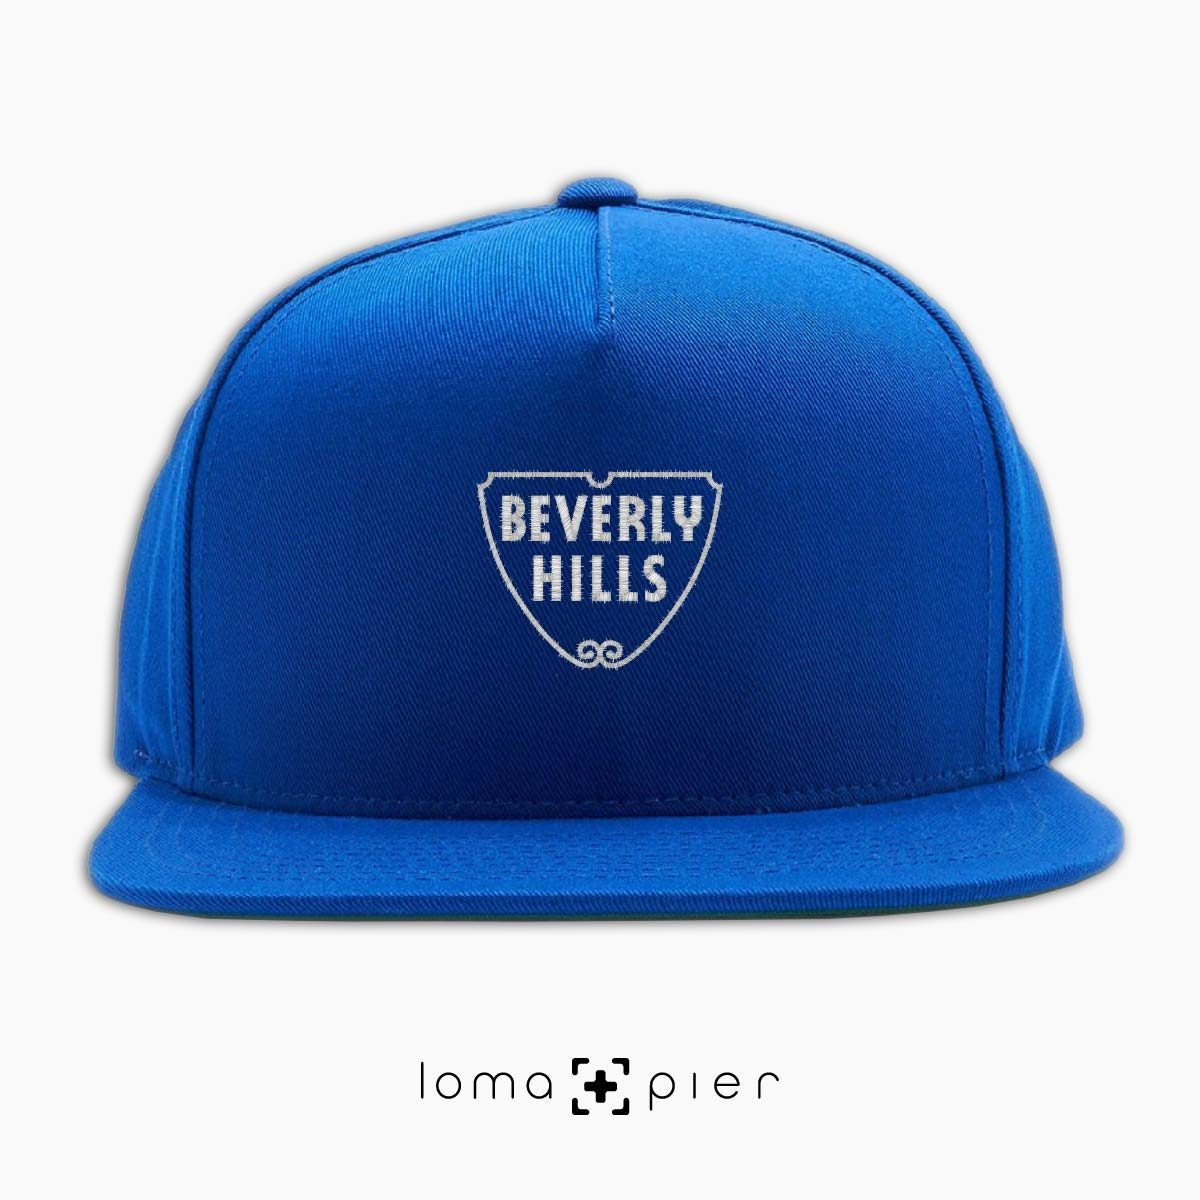 BEVERLY HILLS typography embroidered on a royal blue classic snapback hat with white thread by loma+pier hat store